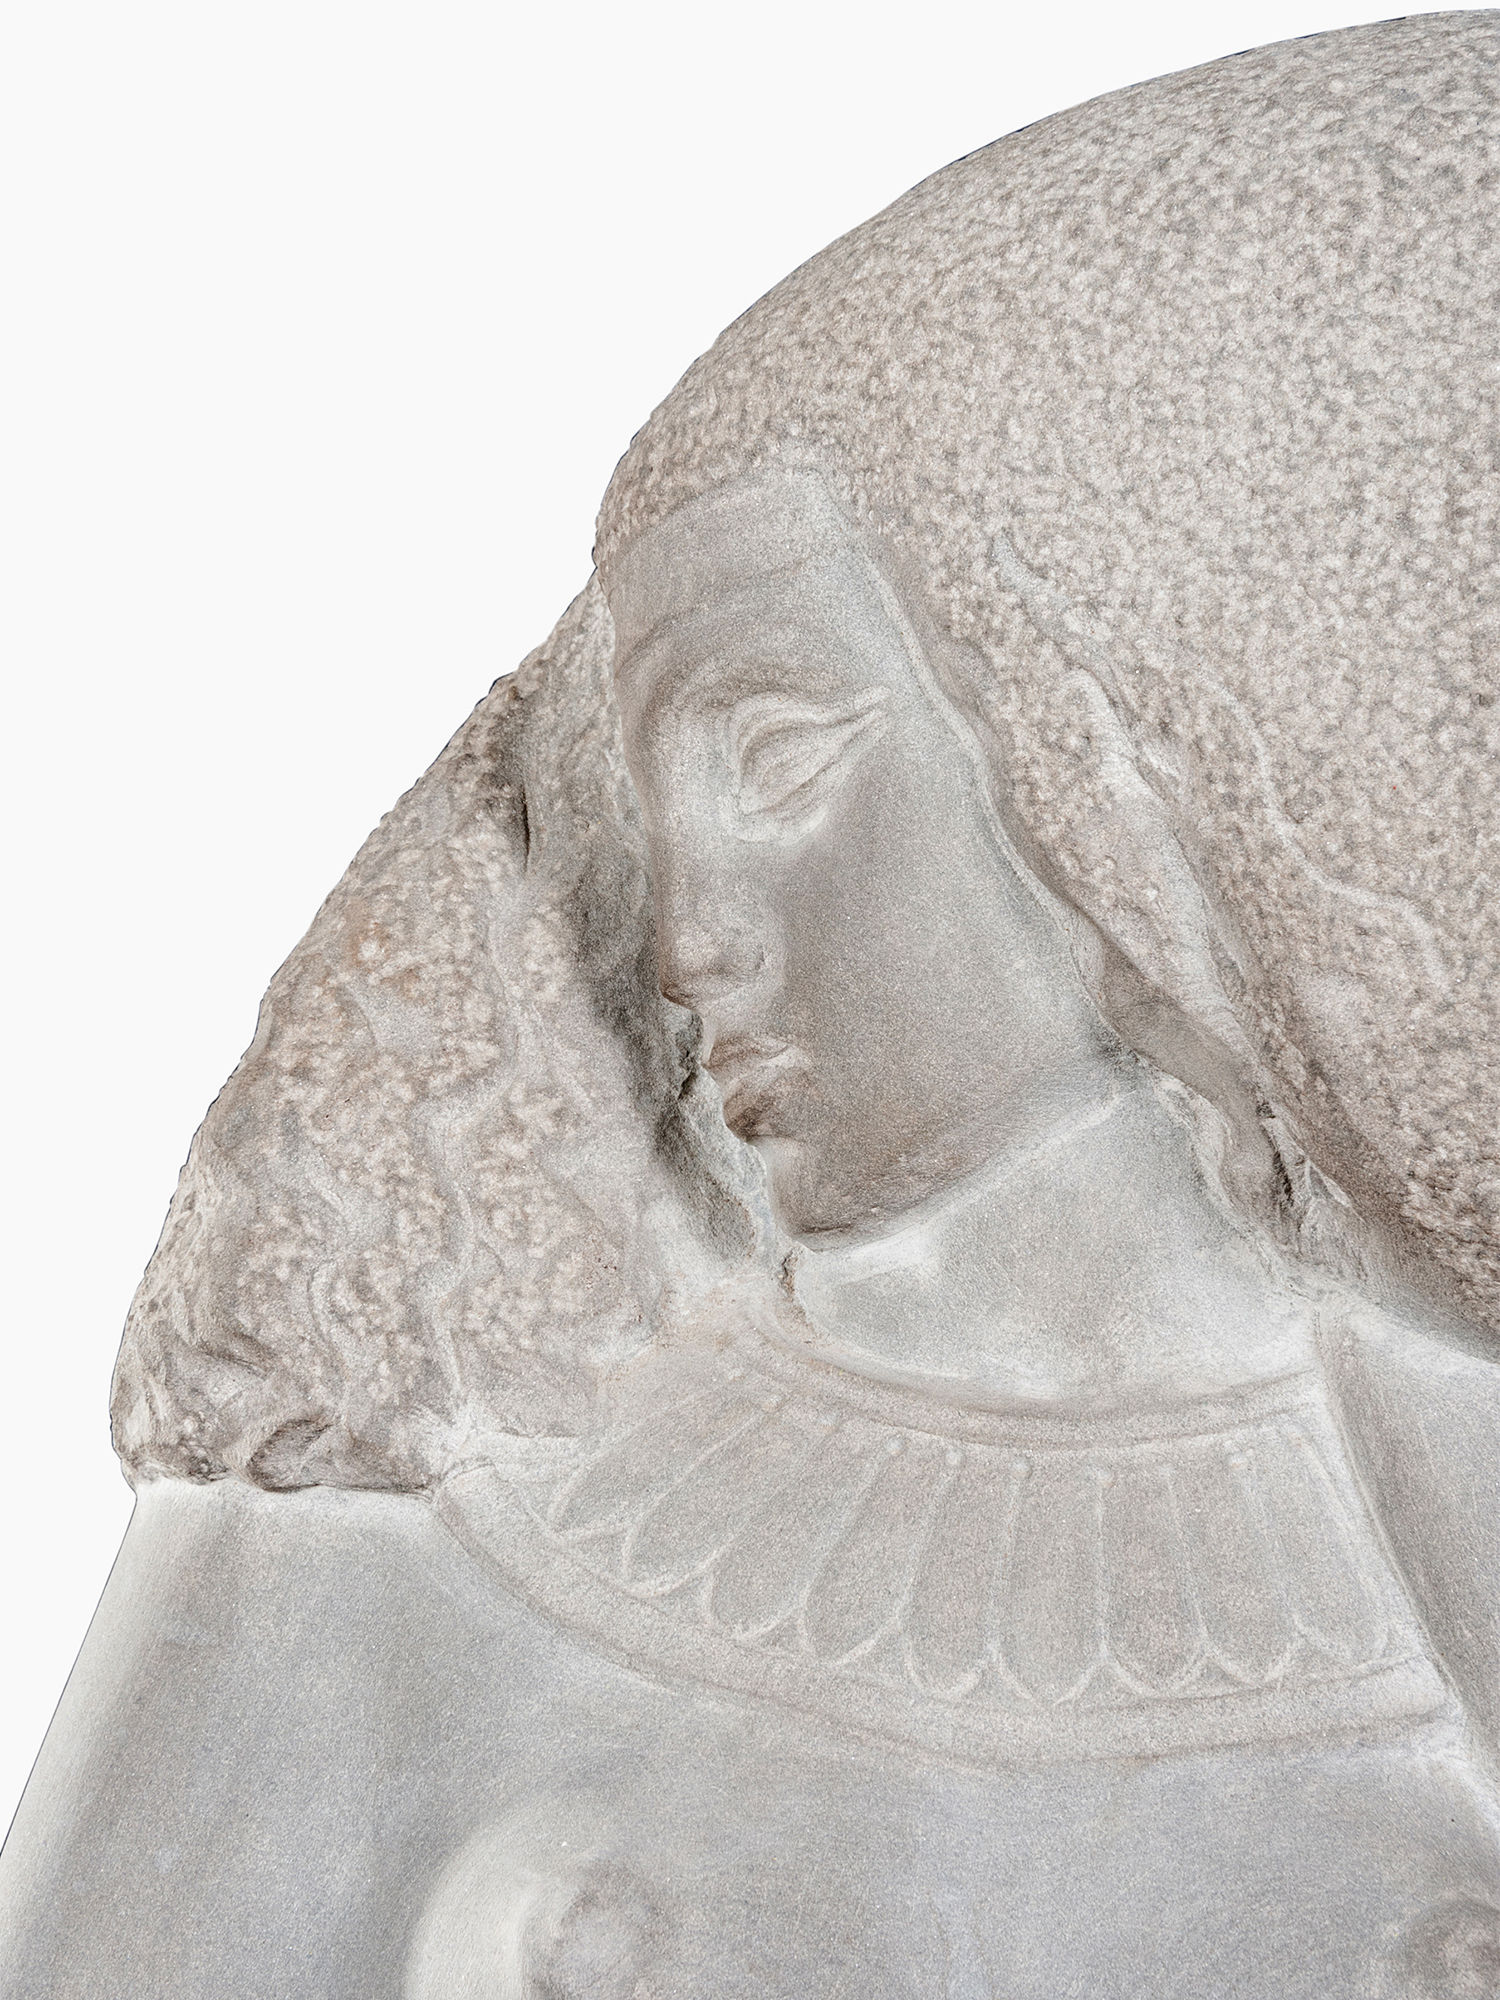 An elegant carved sandstone statue of a young Nubian woman